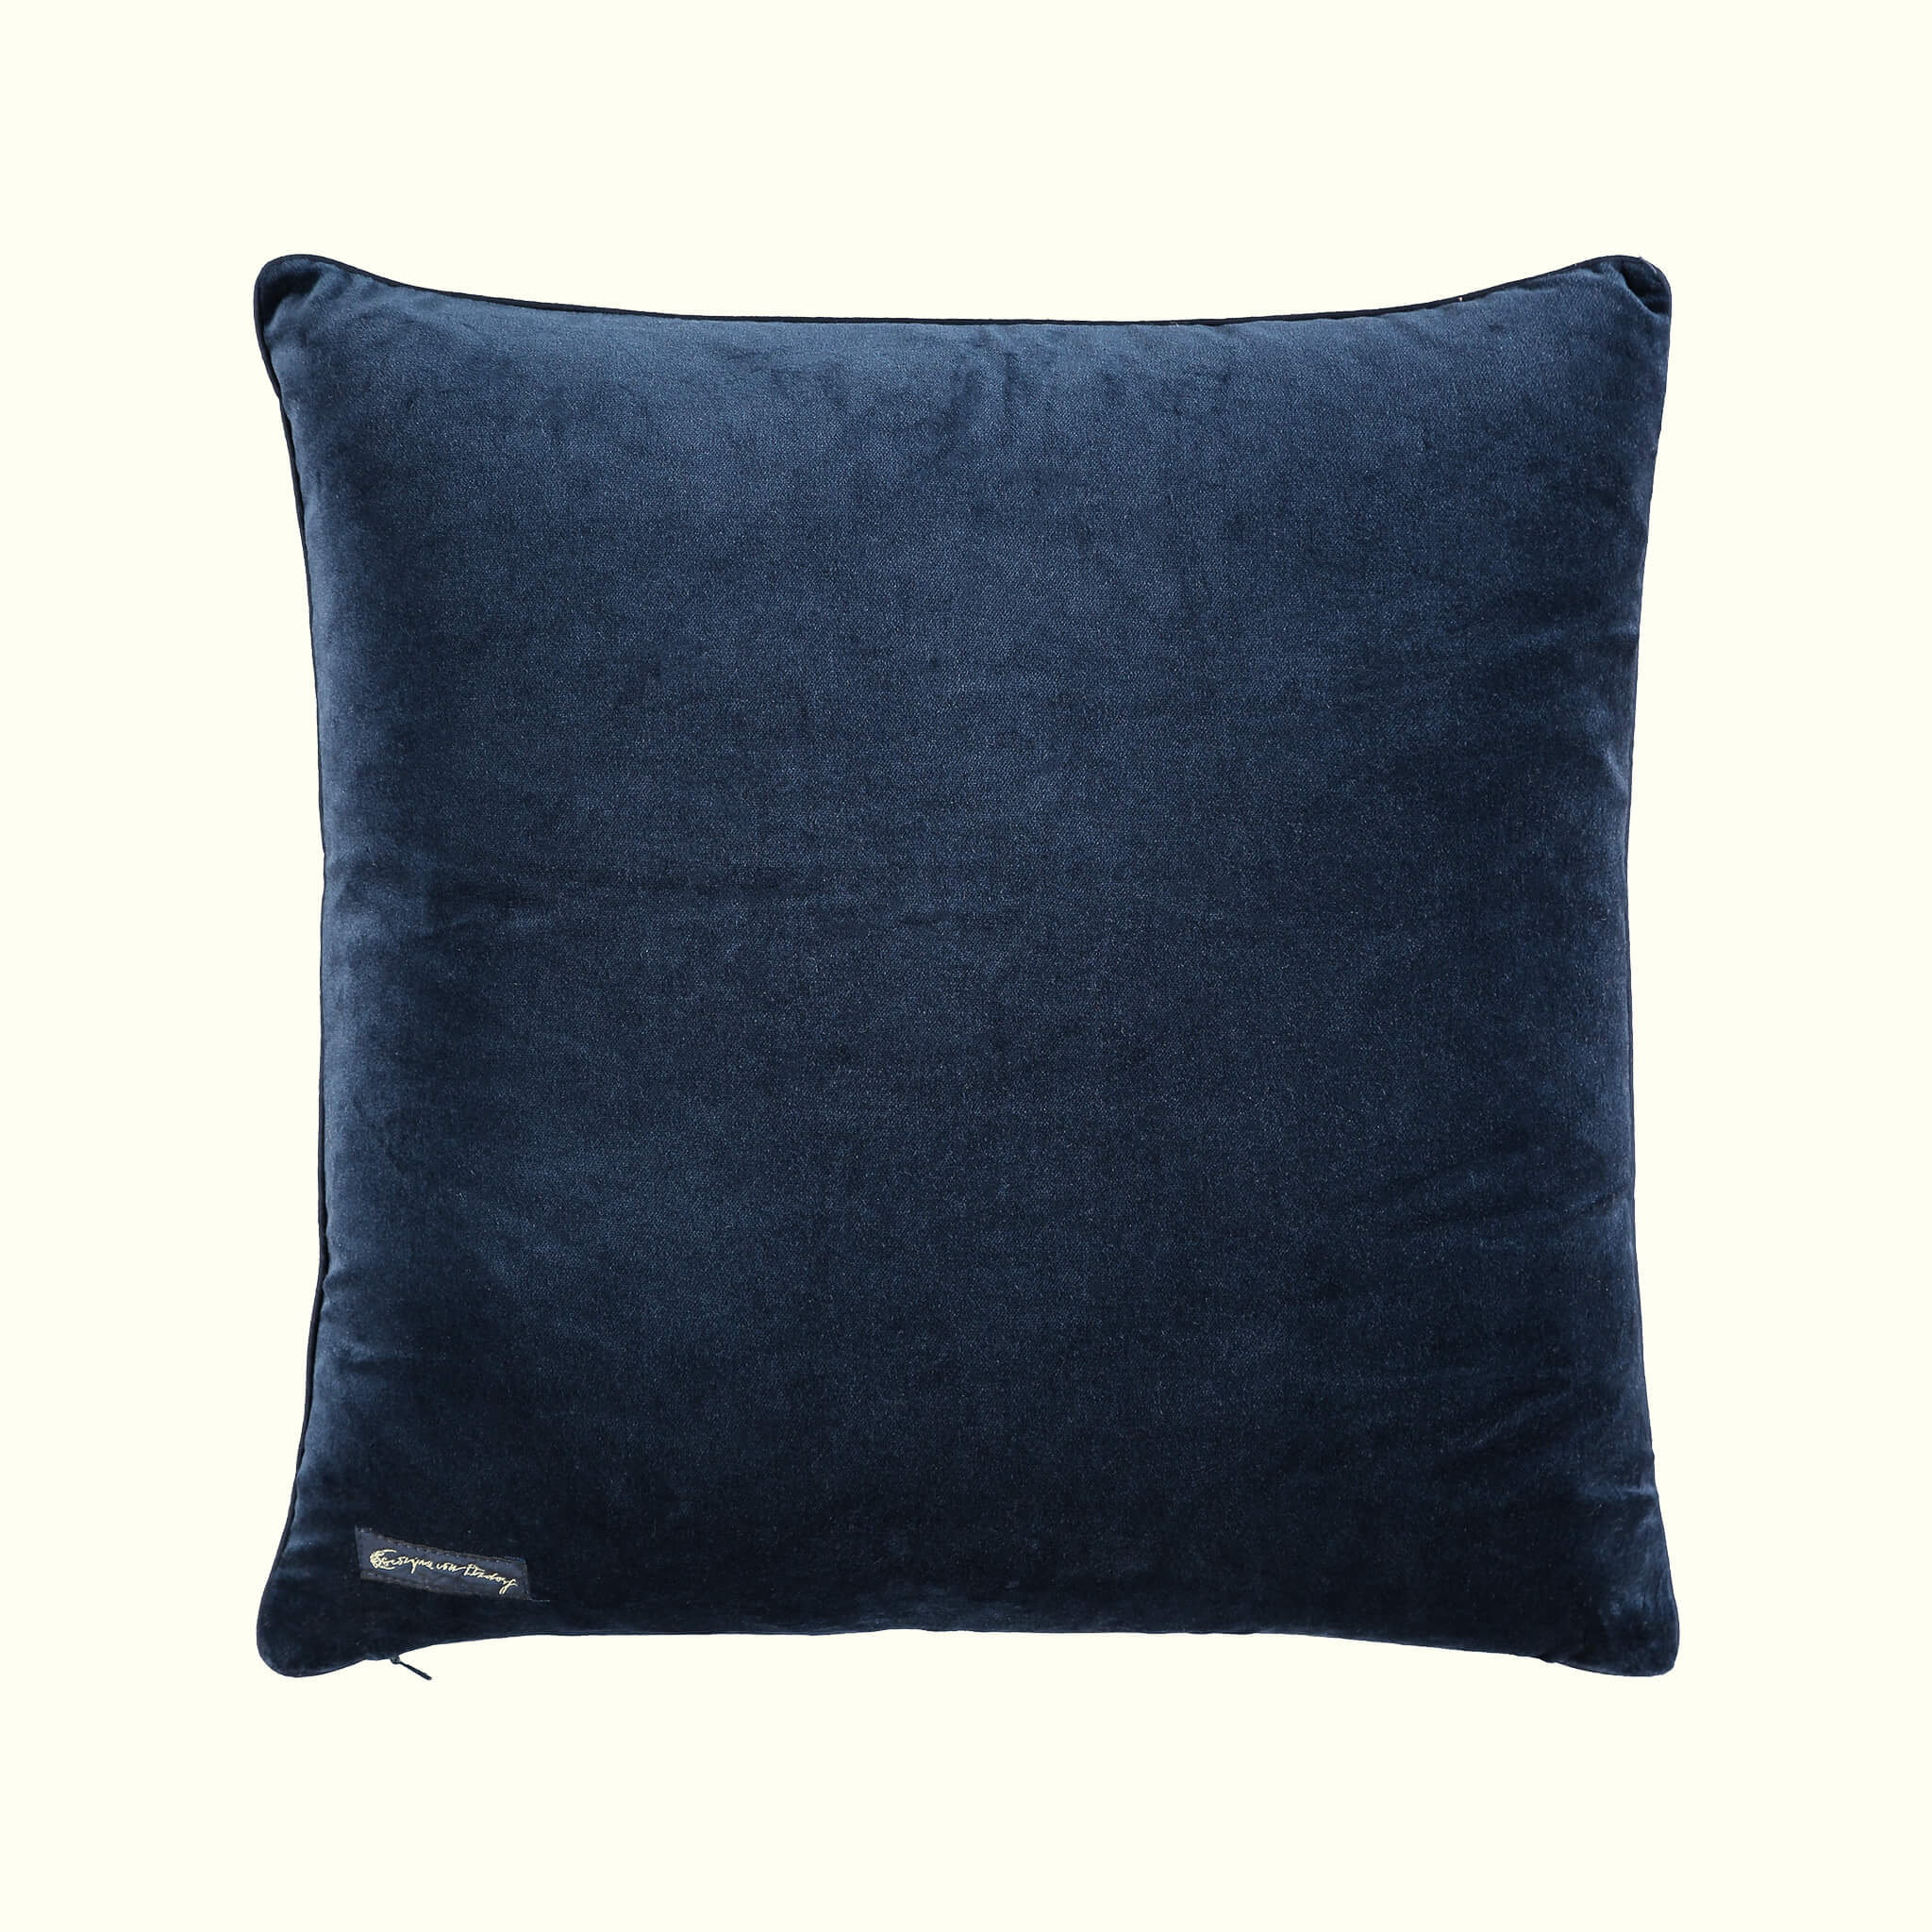 A luxury British cotton velvet cushion by GVE in scarlet Dune print design.